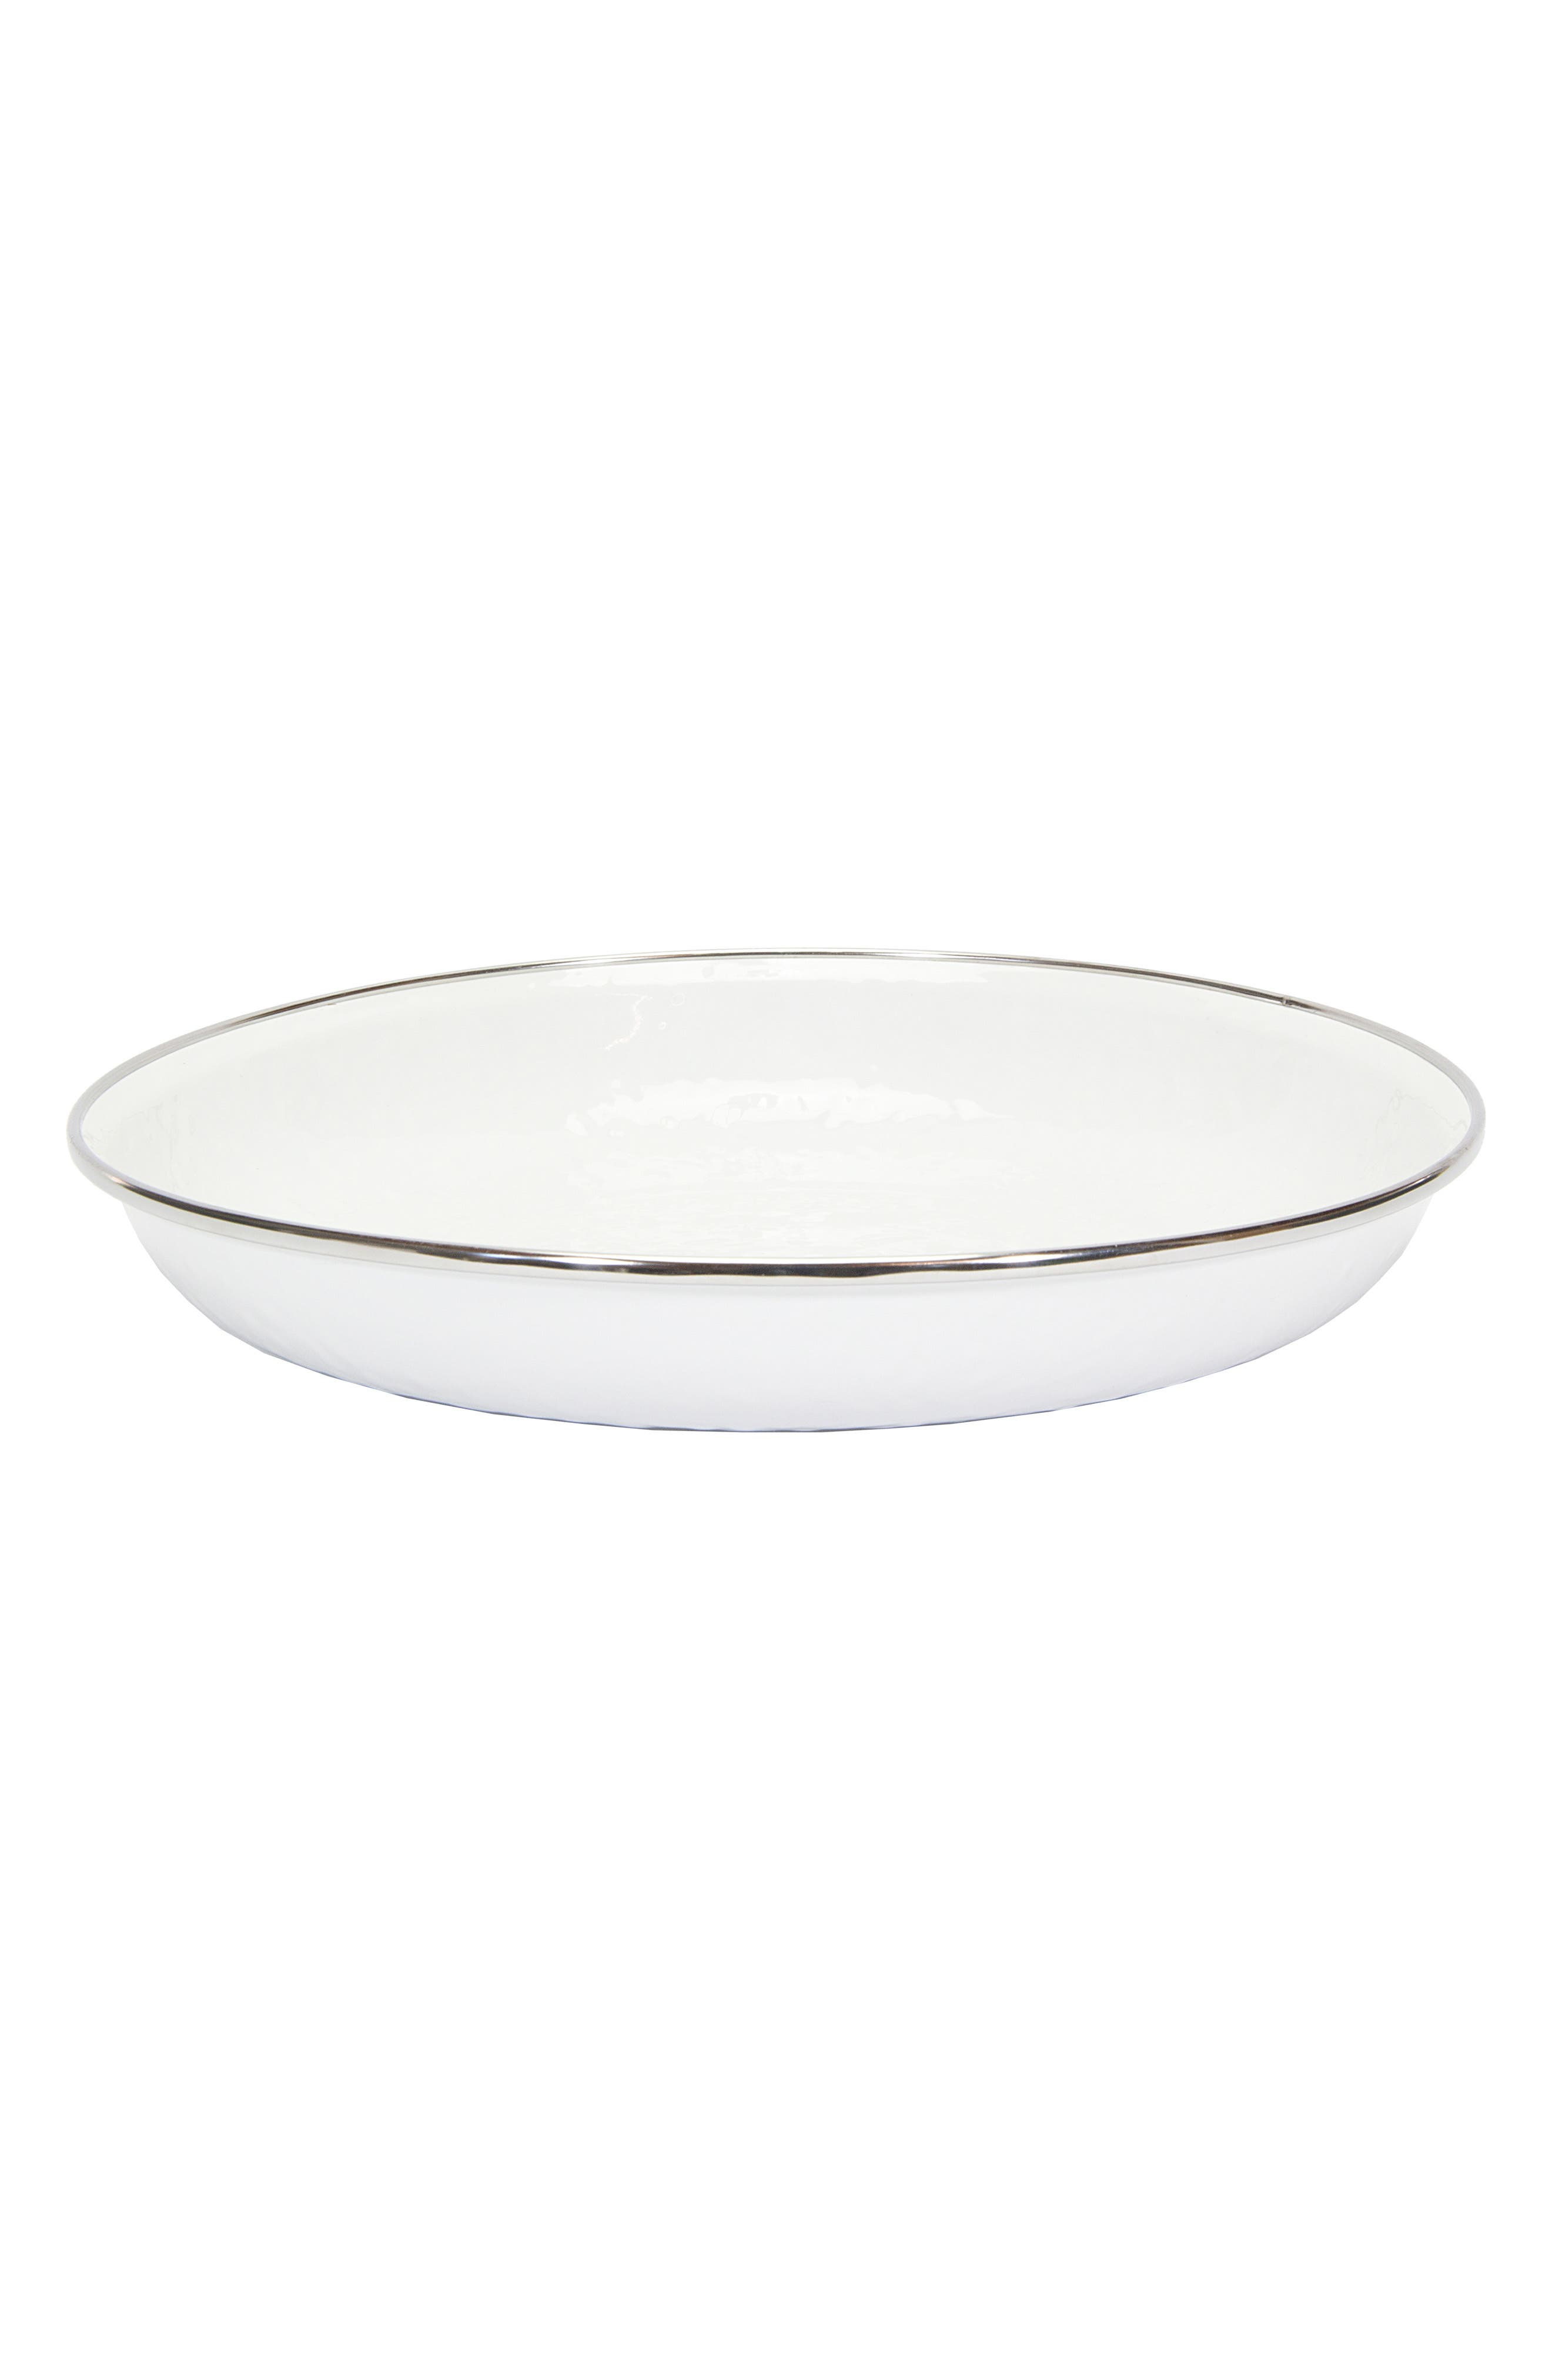 Pasta Plate,                         Main,                         color, SOLID WHITE